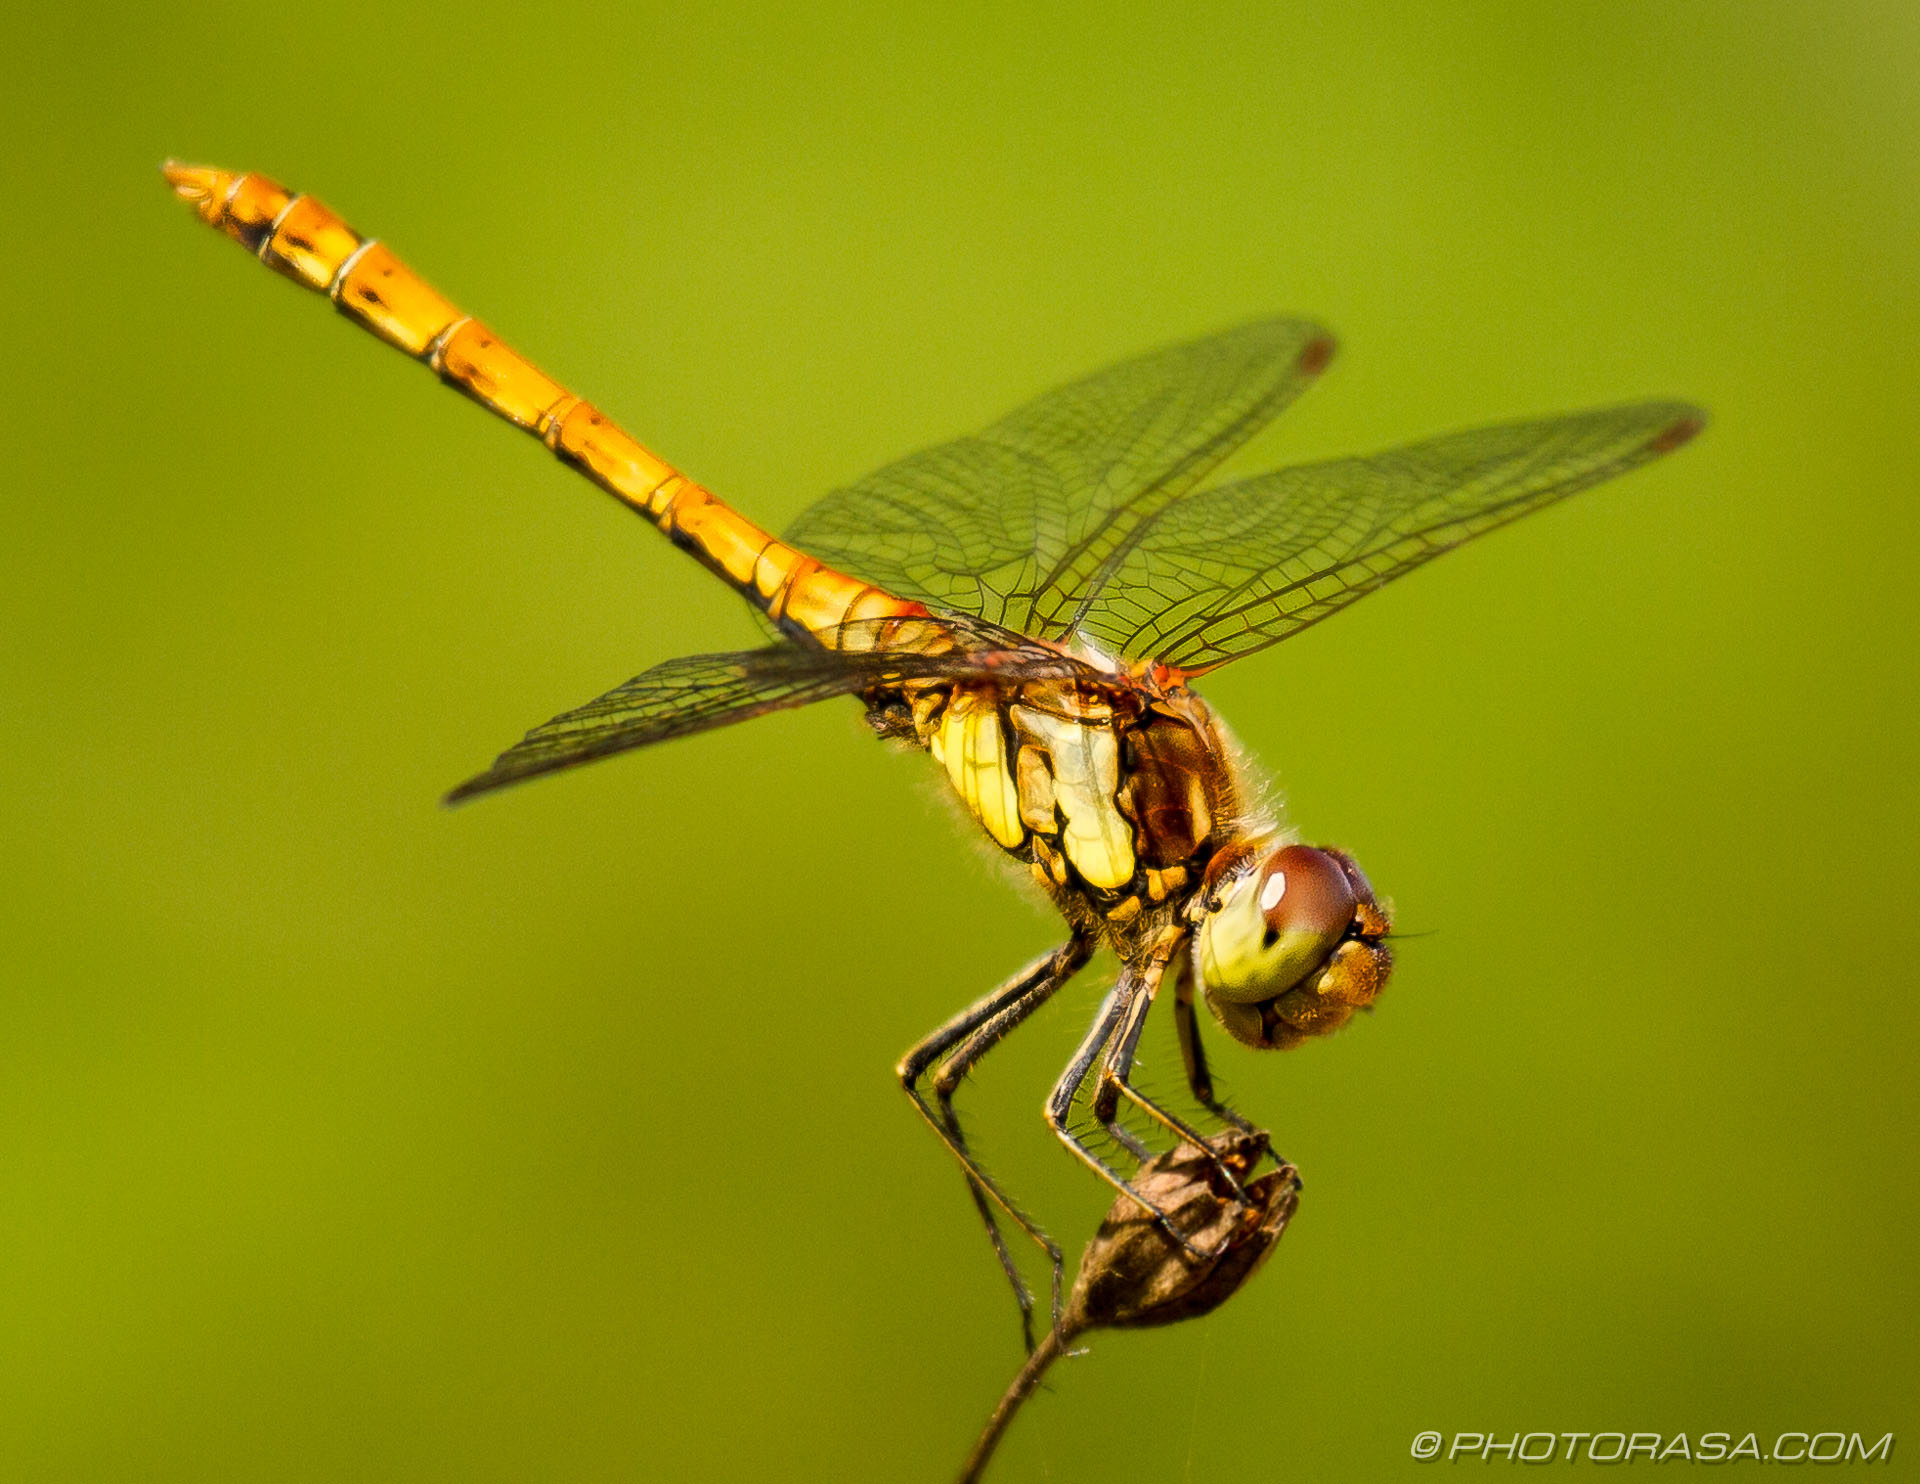 https://photorasa.com/dragonflies/female-common-darter/